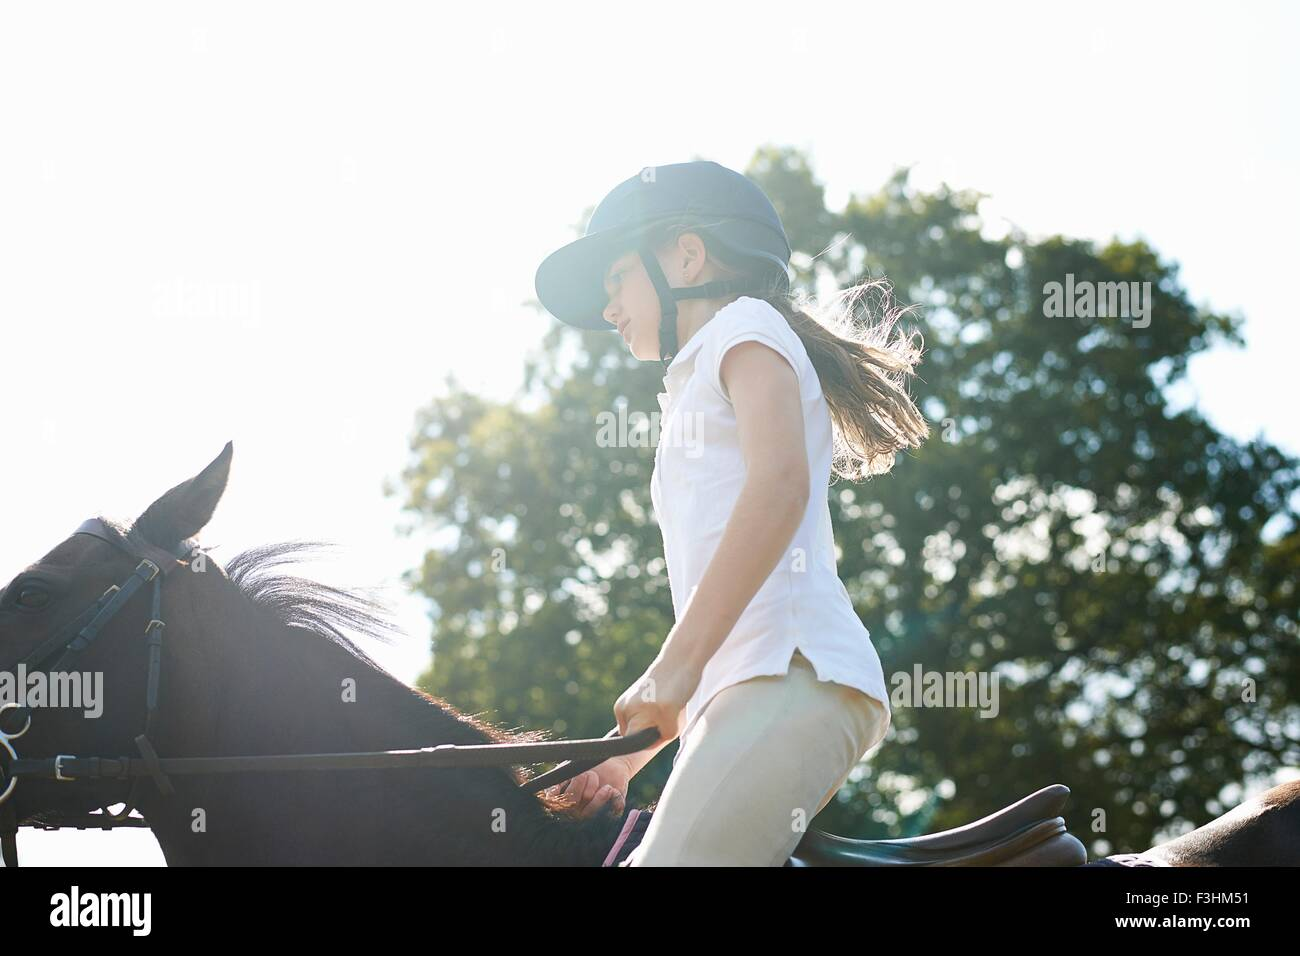 Portrait of Girl riding horse in countryside Photo Stock